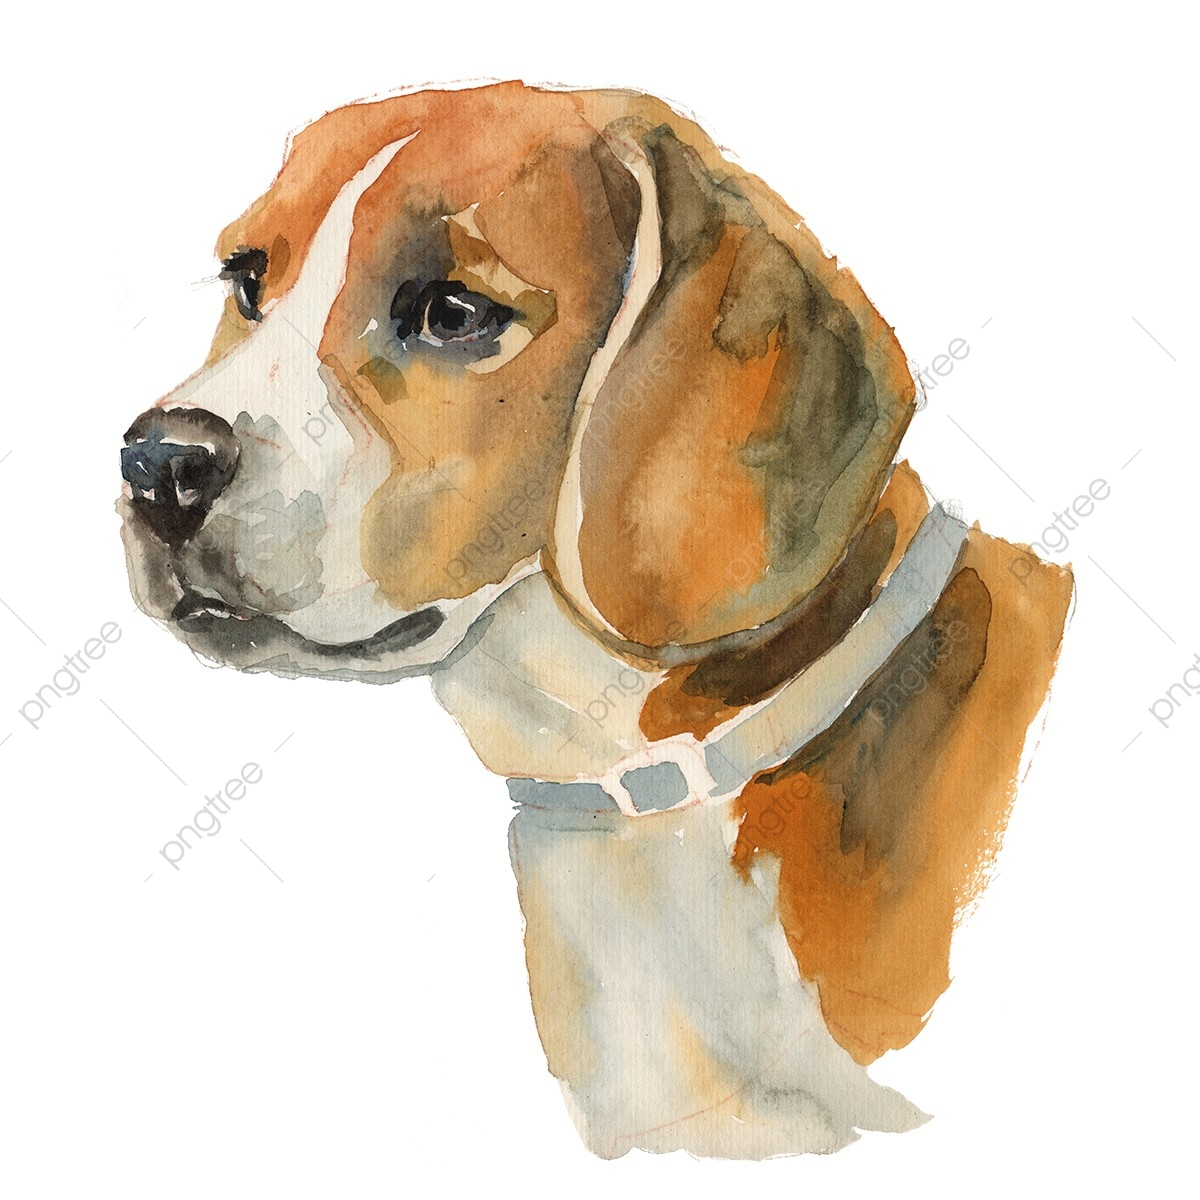 Christmas Beagle Clipart.Beagle Animal Png Transparent Clipart Image And Psd File